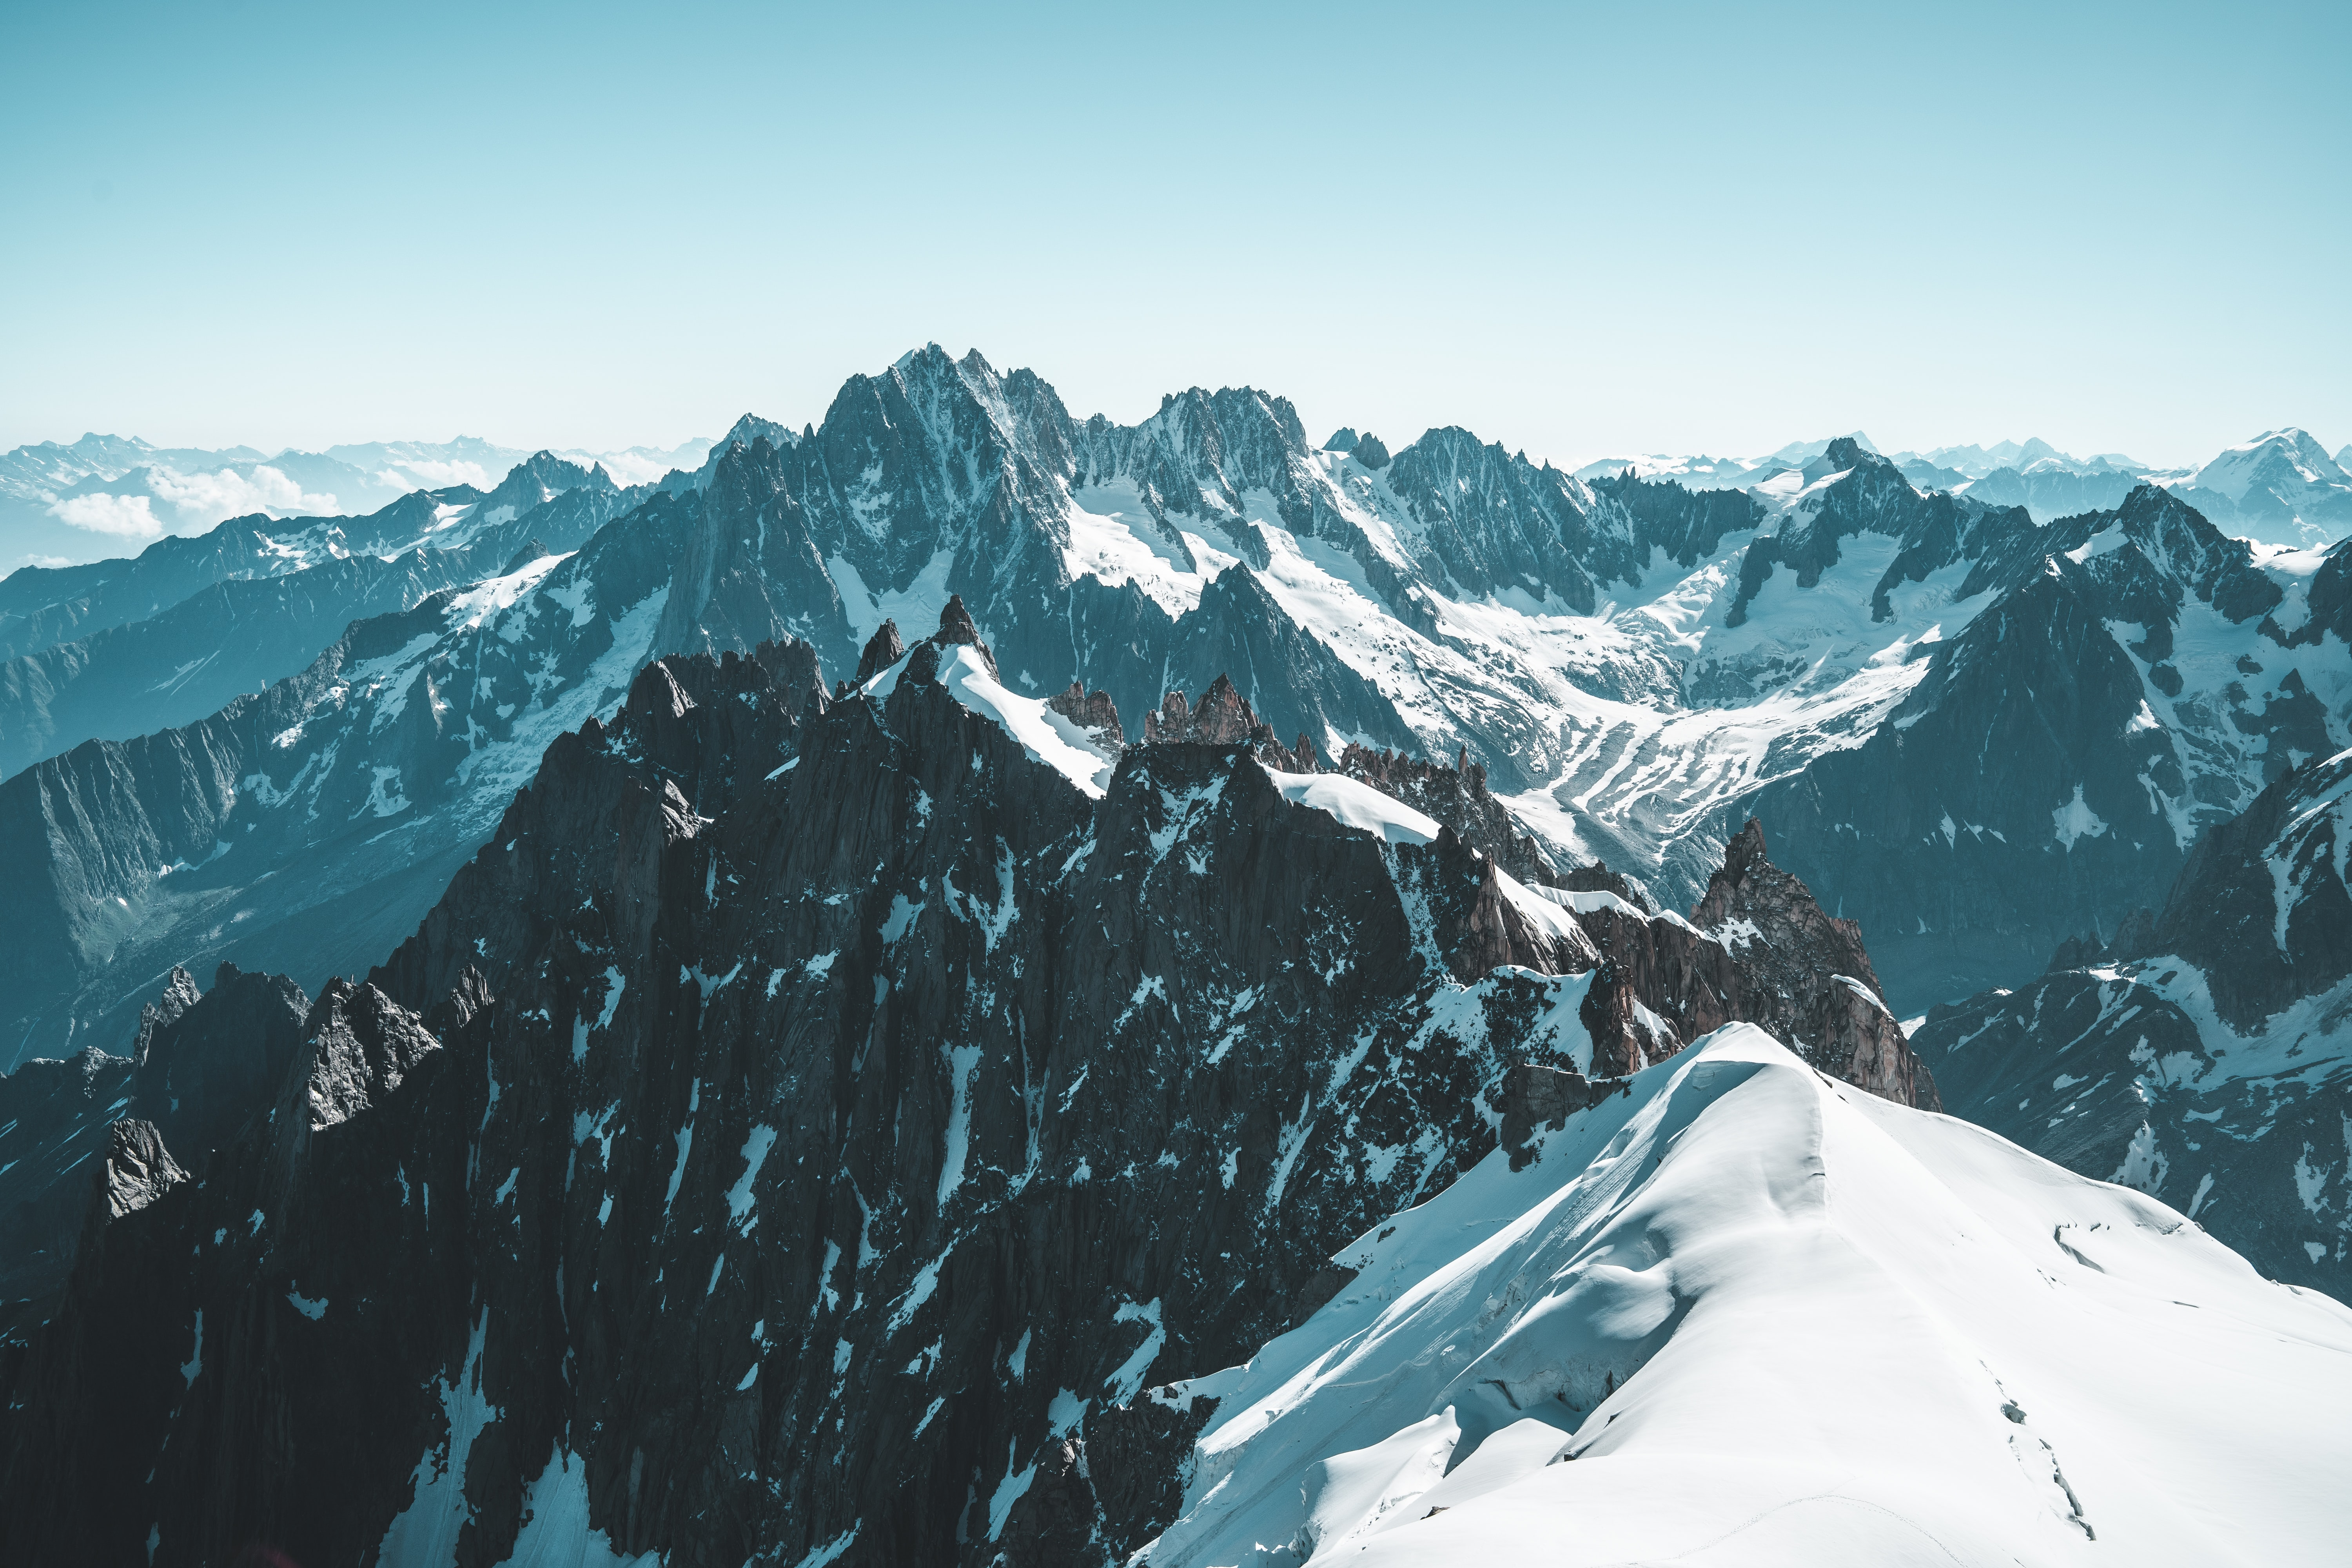 bird's-eye view photography of mountain range